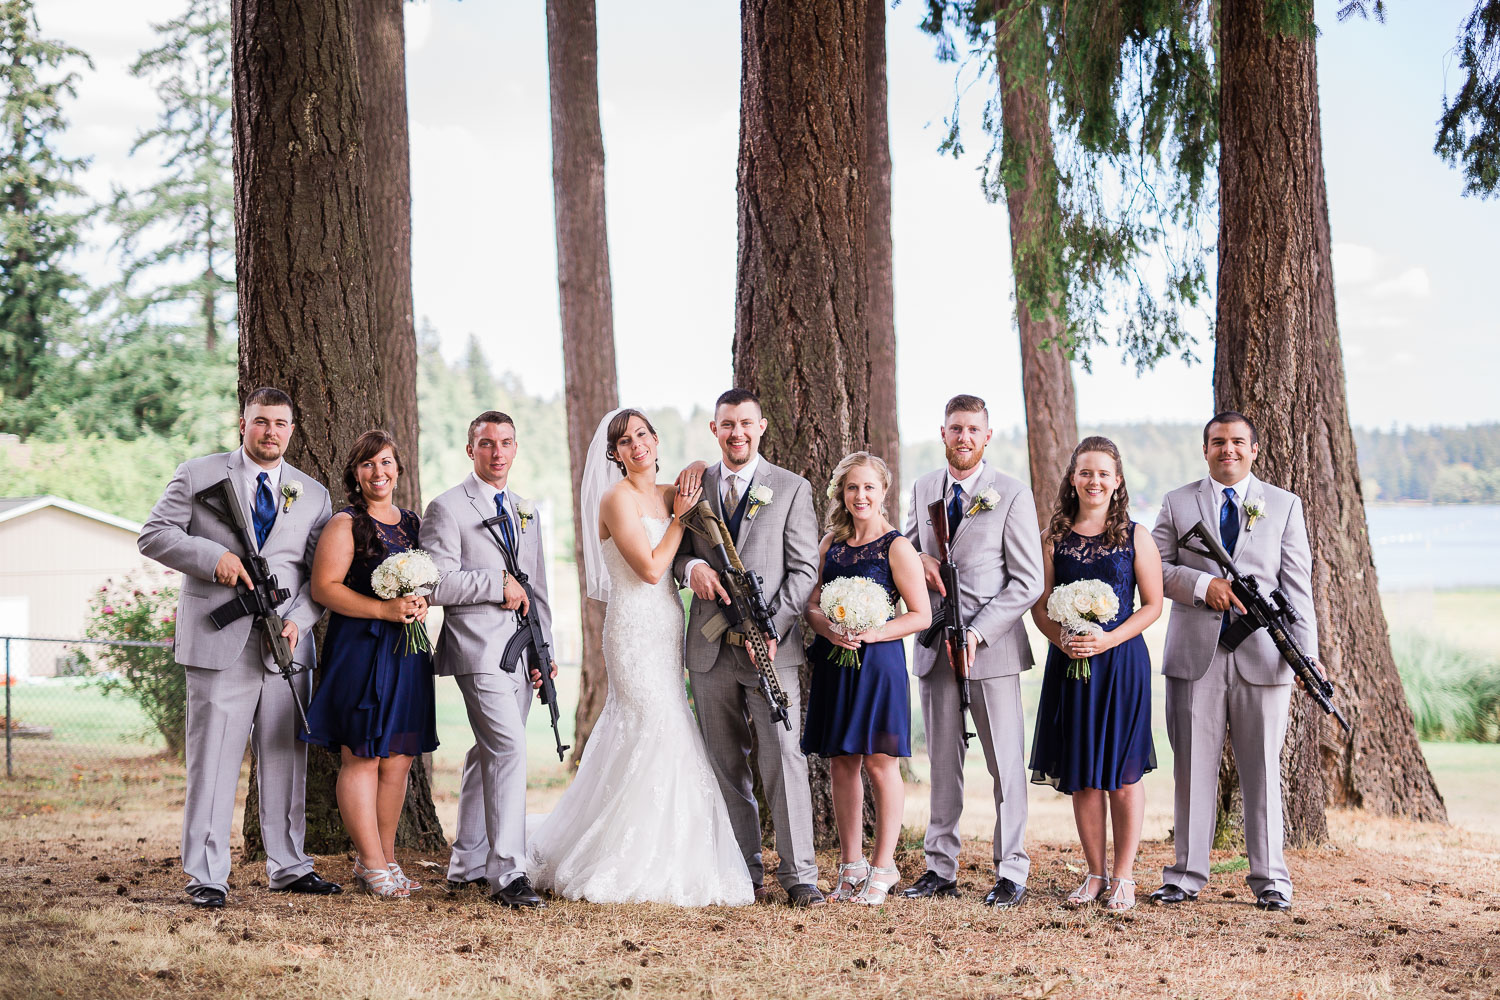 Wedding party with rifles